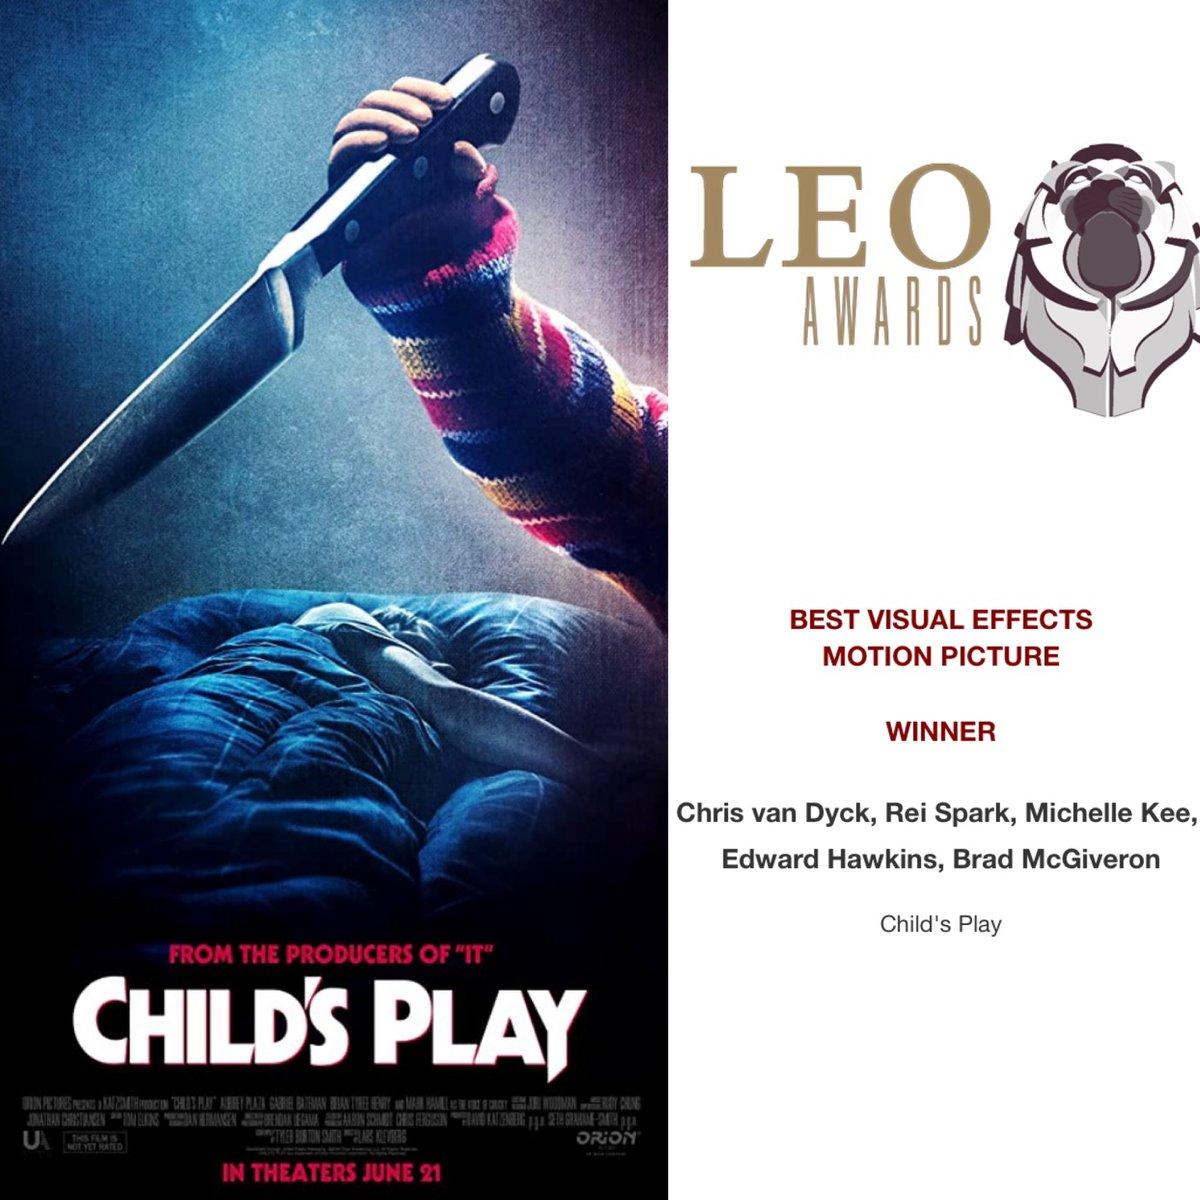 Congratulations to our Vancouver team on winning BEST VISUAL EFFECTS for a Motion Picture at the @LeoAwards for @ChildsPlayMovie! #LeoAwards #Vancouver #ChildsPlay #VFX #VisualEffects #CraftyApesVFXpic.twitter.com/vZvkgSXdzN